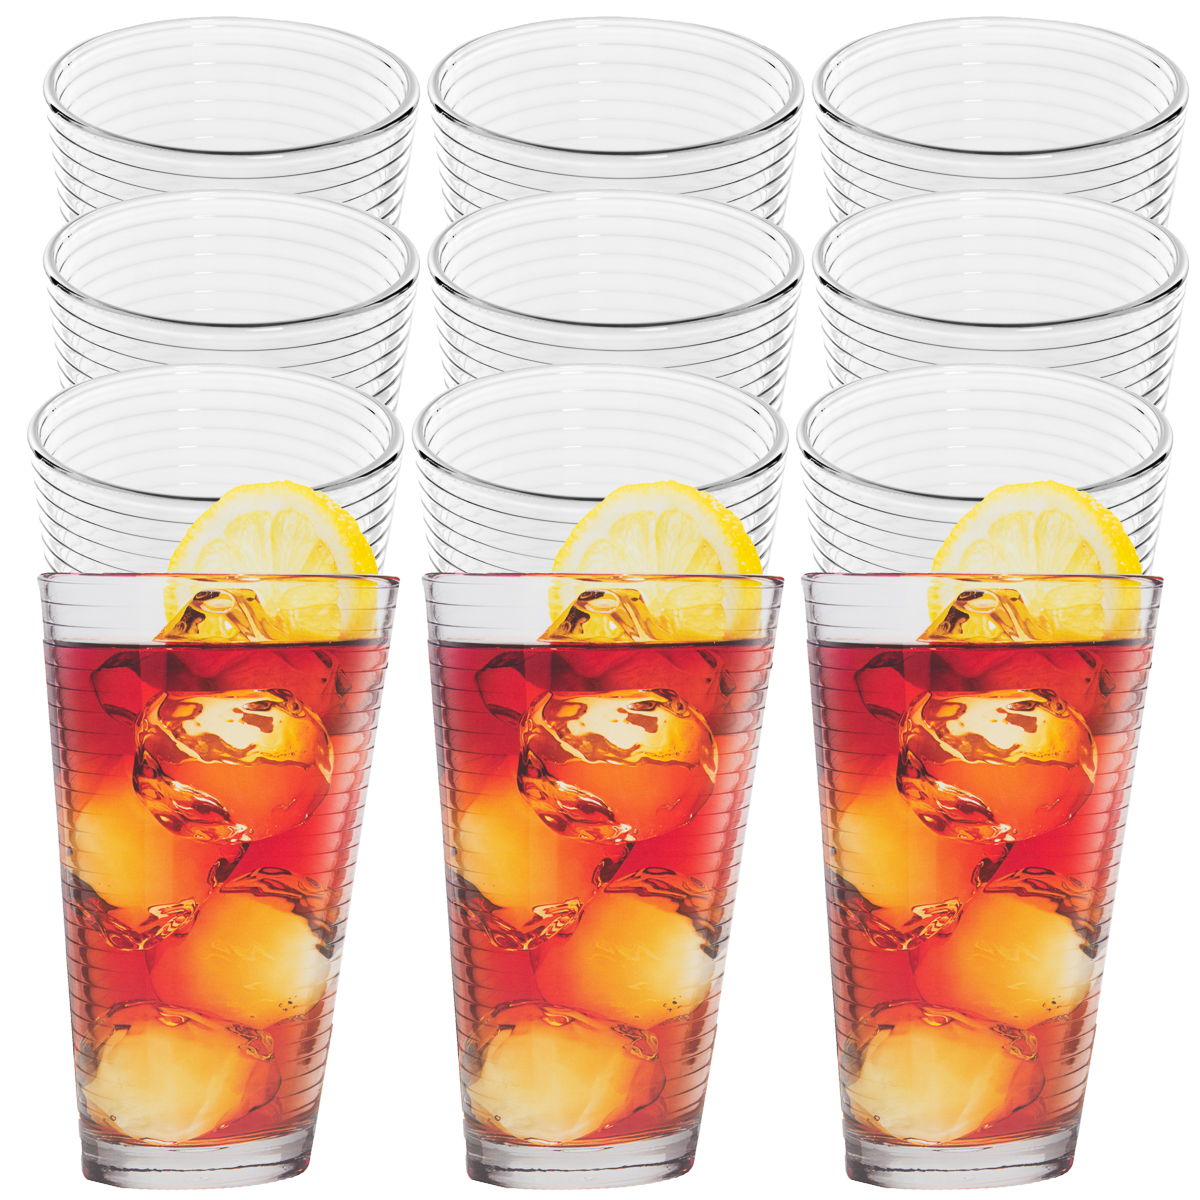 12pk Anchor Hocking 14oz Thick Drinking Glasses Set Clear Glass Beverage Tumbler